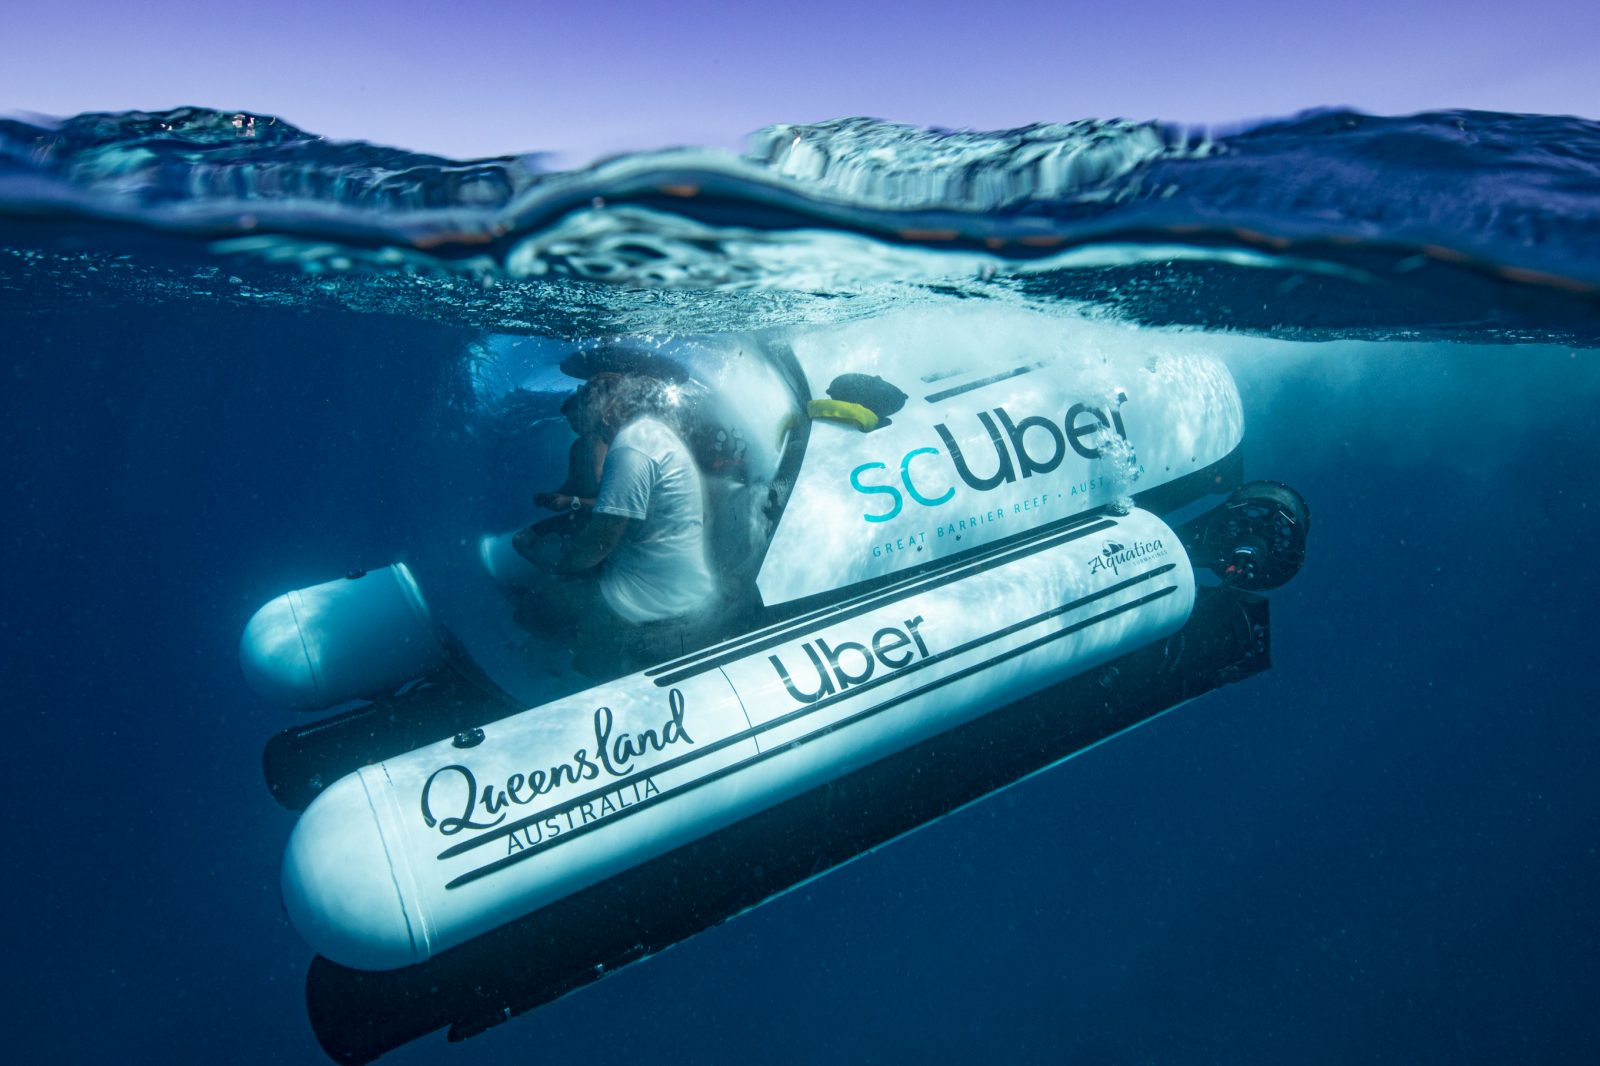 scuber, rideshare, submarine experience, Great Barrier Reef, travel, top vacation, holiday, extreme, diving, scuba, destination, holiday, sea, coral, ocean, fish, uber, queensland, Australia, giant clam, whales, turtles, manta rays, clown fish, sharks, potato cod, Maori wrasse